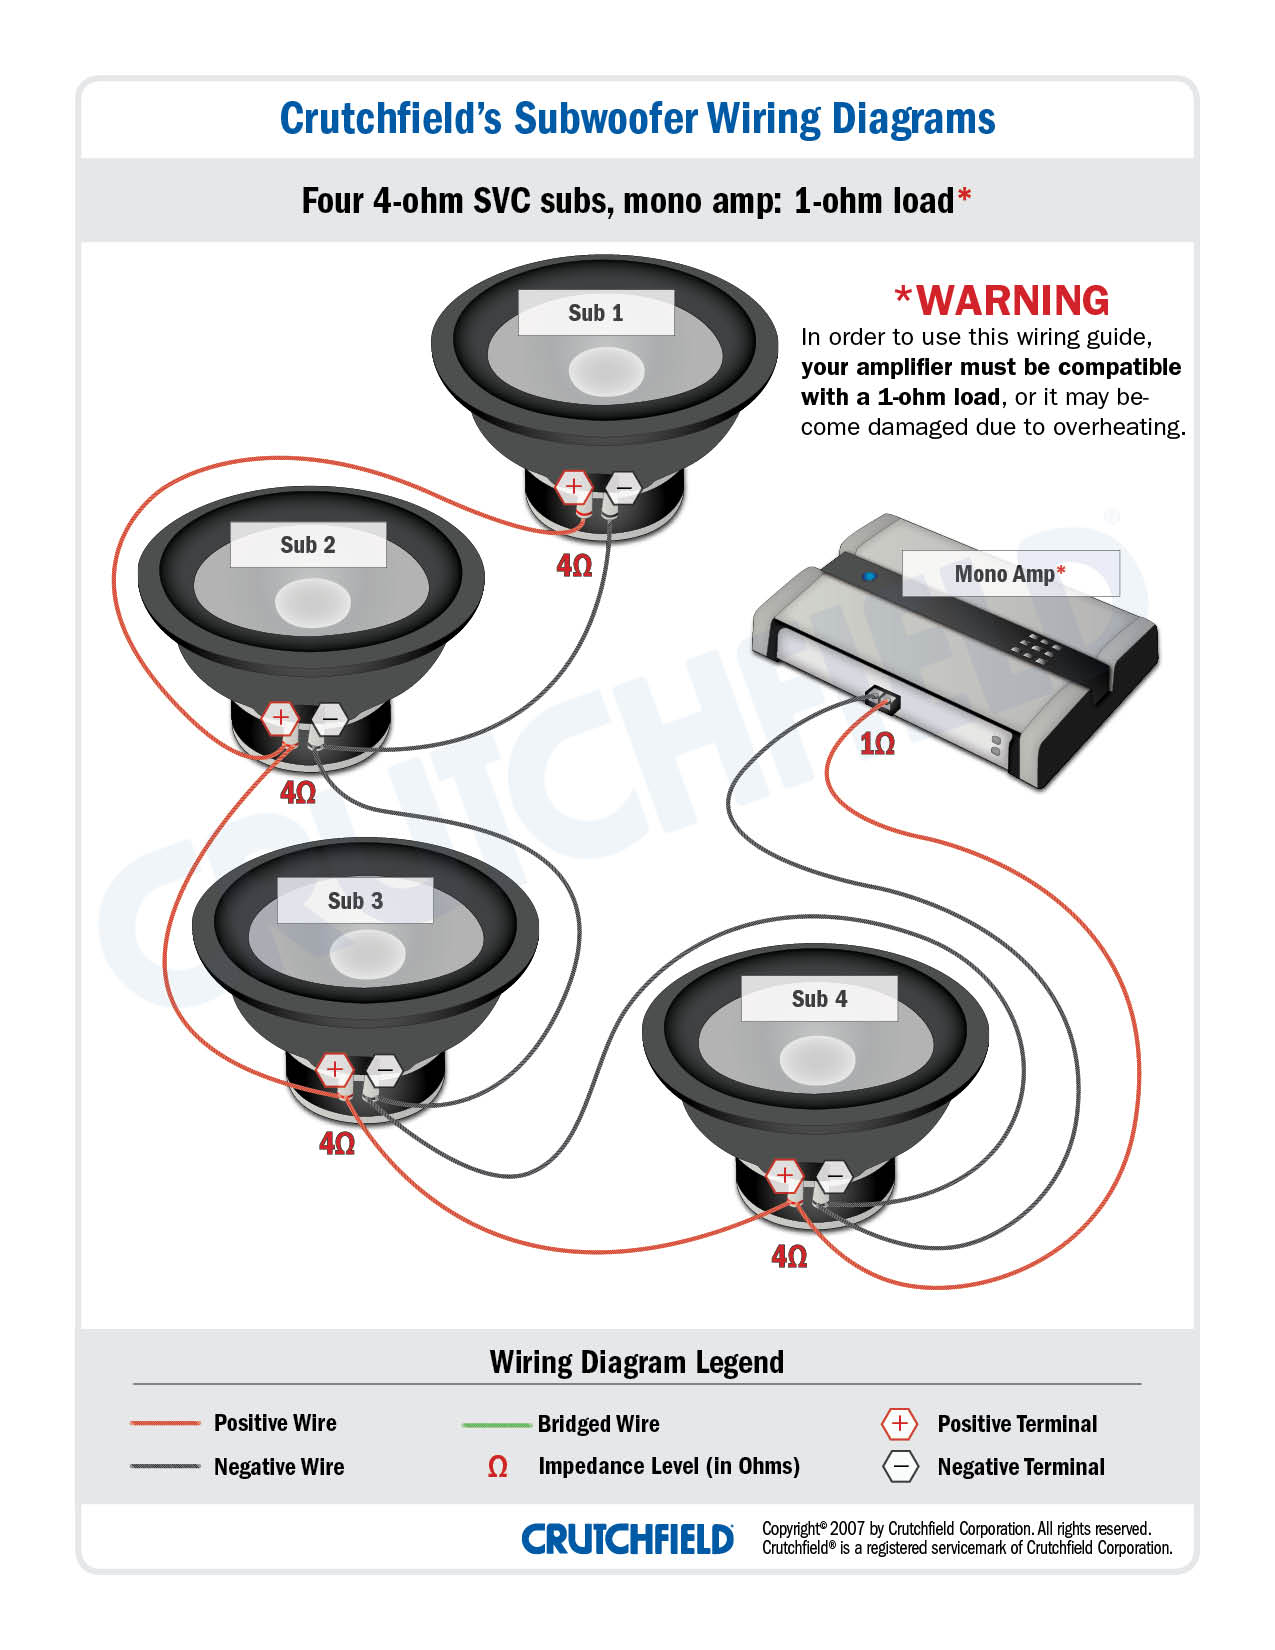 4 SVC 4 ohm mono low imp wiring subwoofers what's all this about ohms? 1 ohm stable wiring diagram at mifinder.co